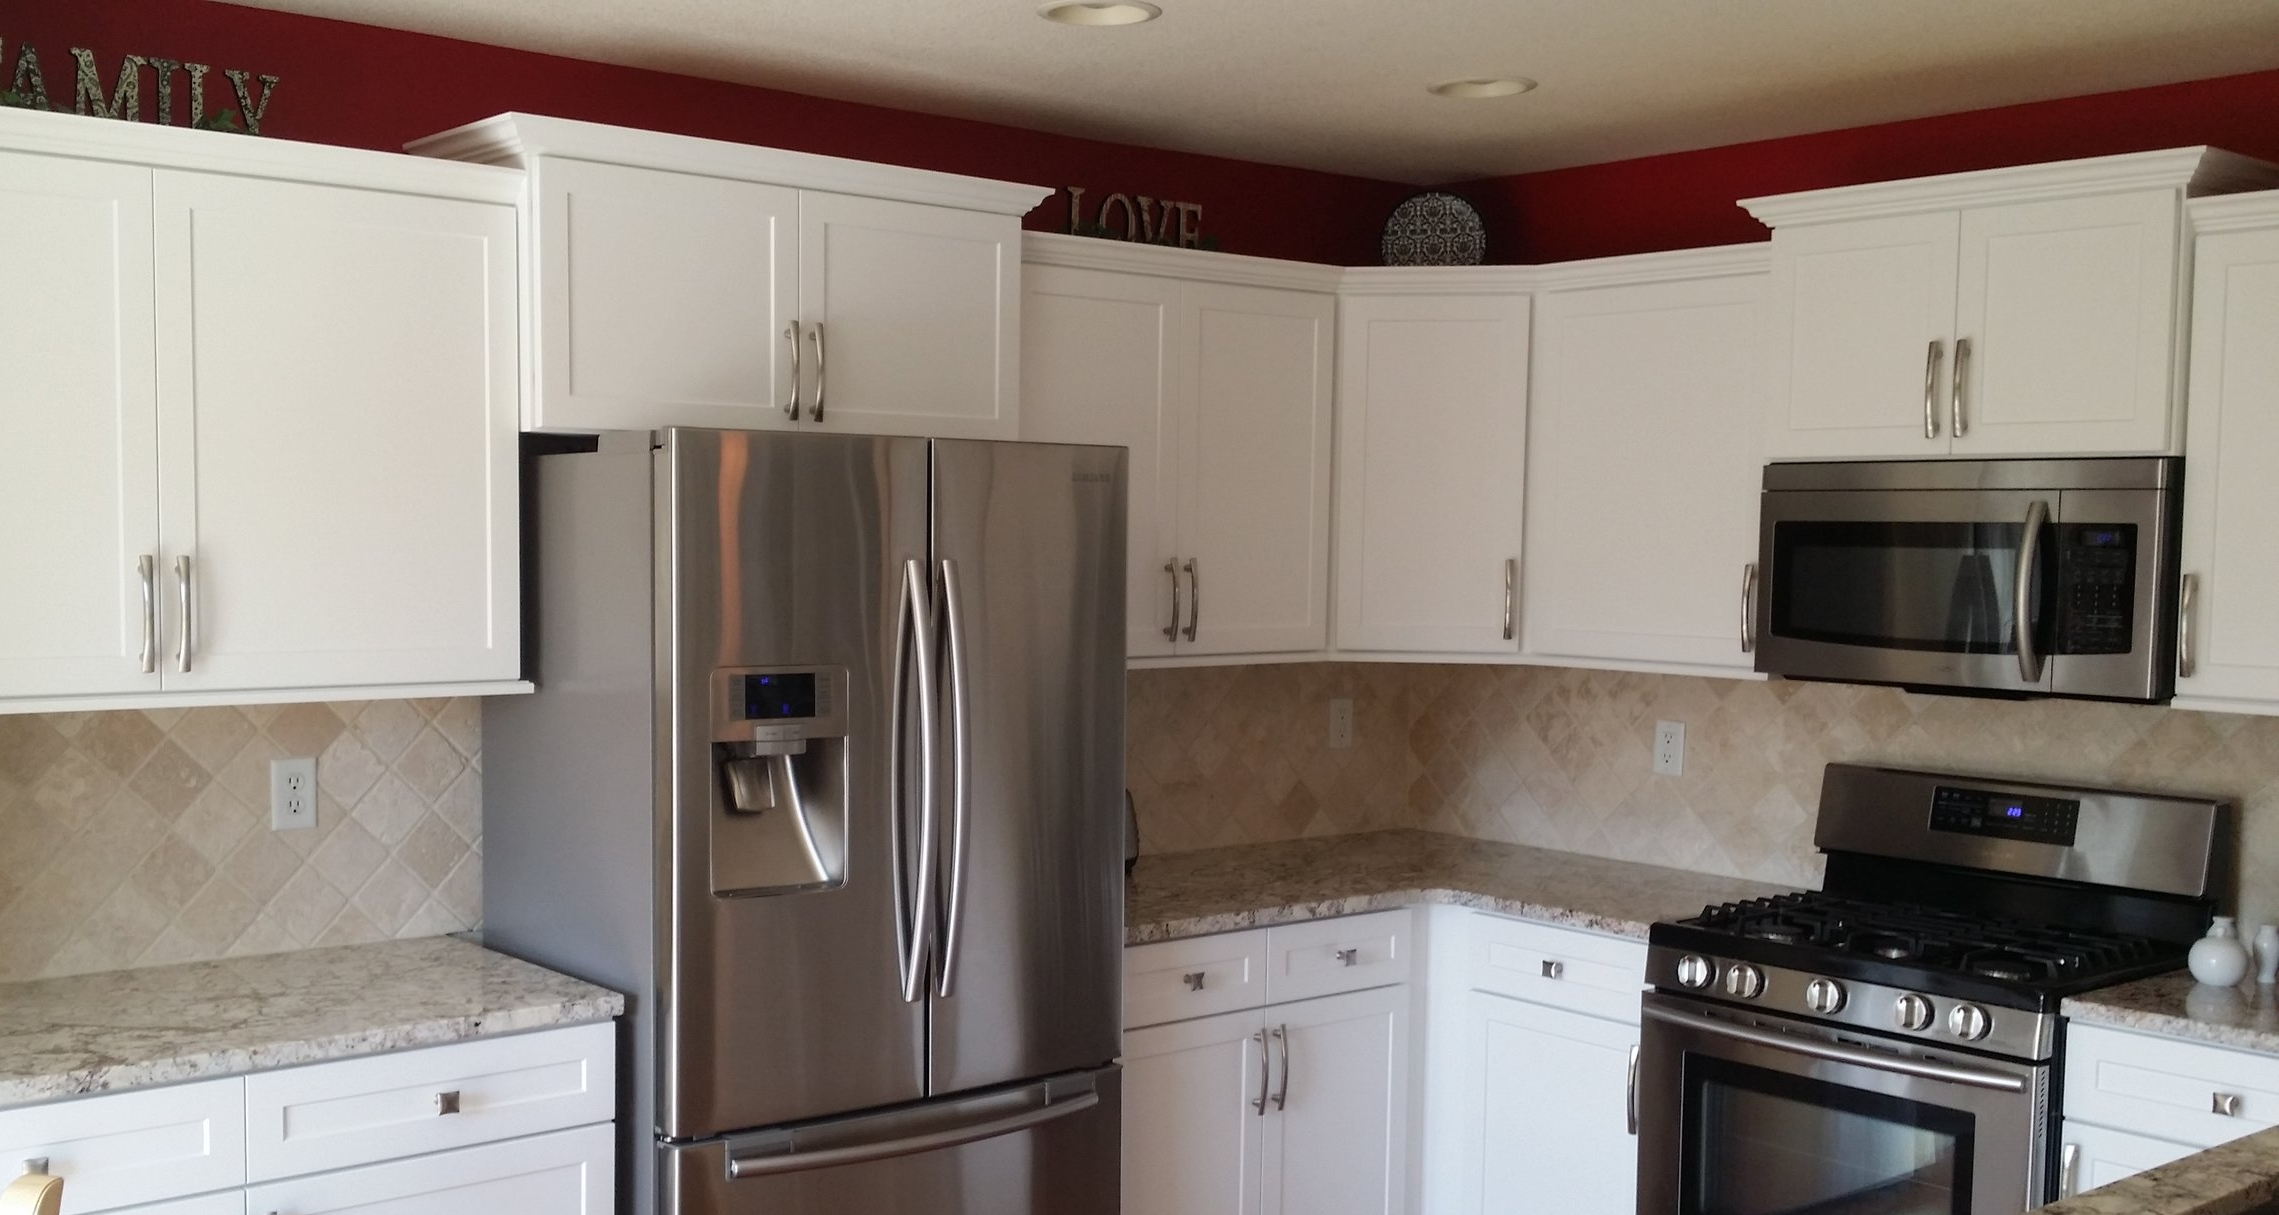 Replacing standard cabinet sizes with a larger cabinet above the microwave and or fridge can give a simple kitchen a much more dramatic look if you have space for it. This photo also features crown moulding, under cabinet trim, and full overlay spacing.